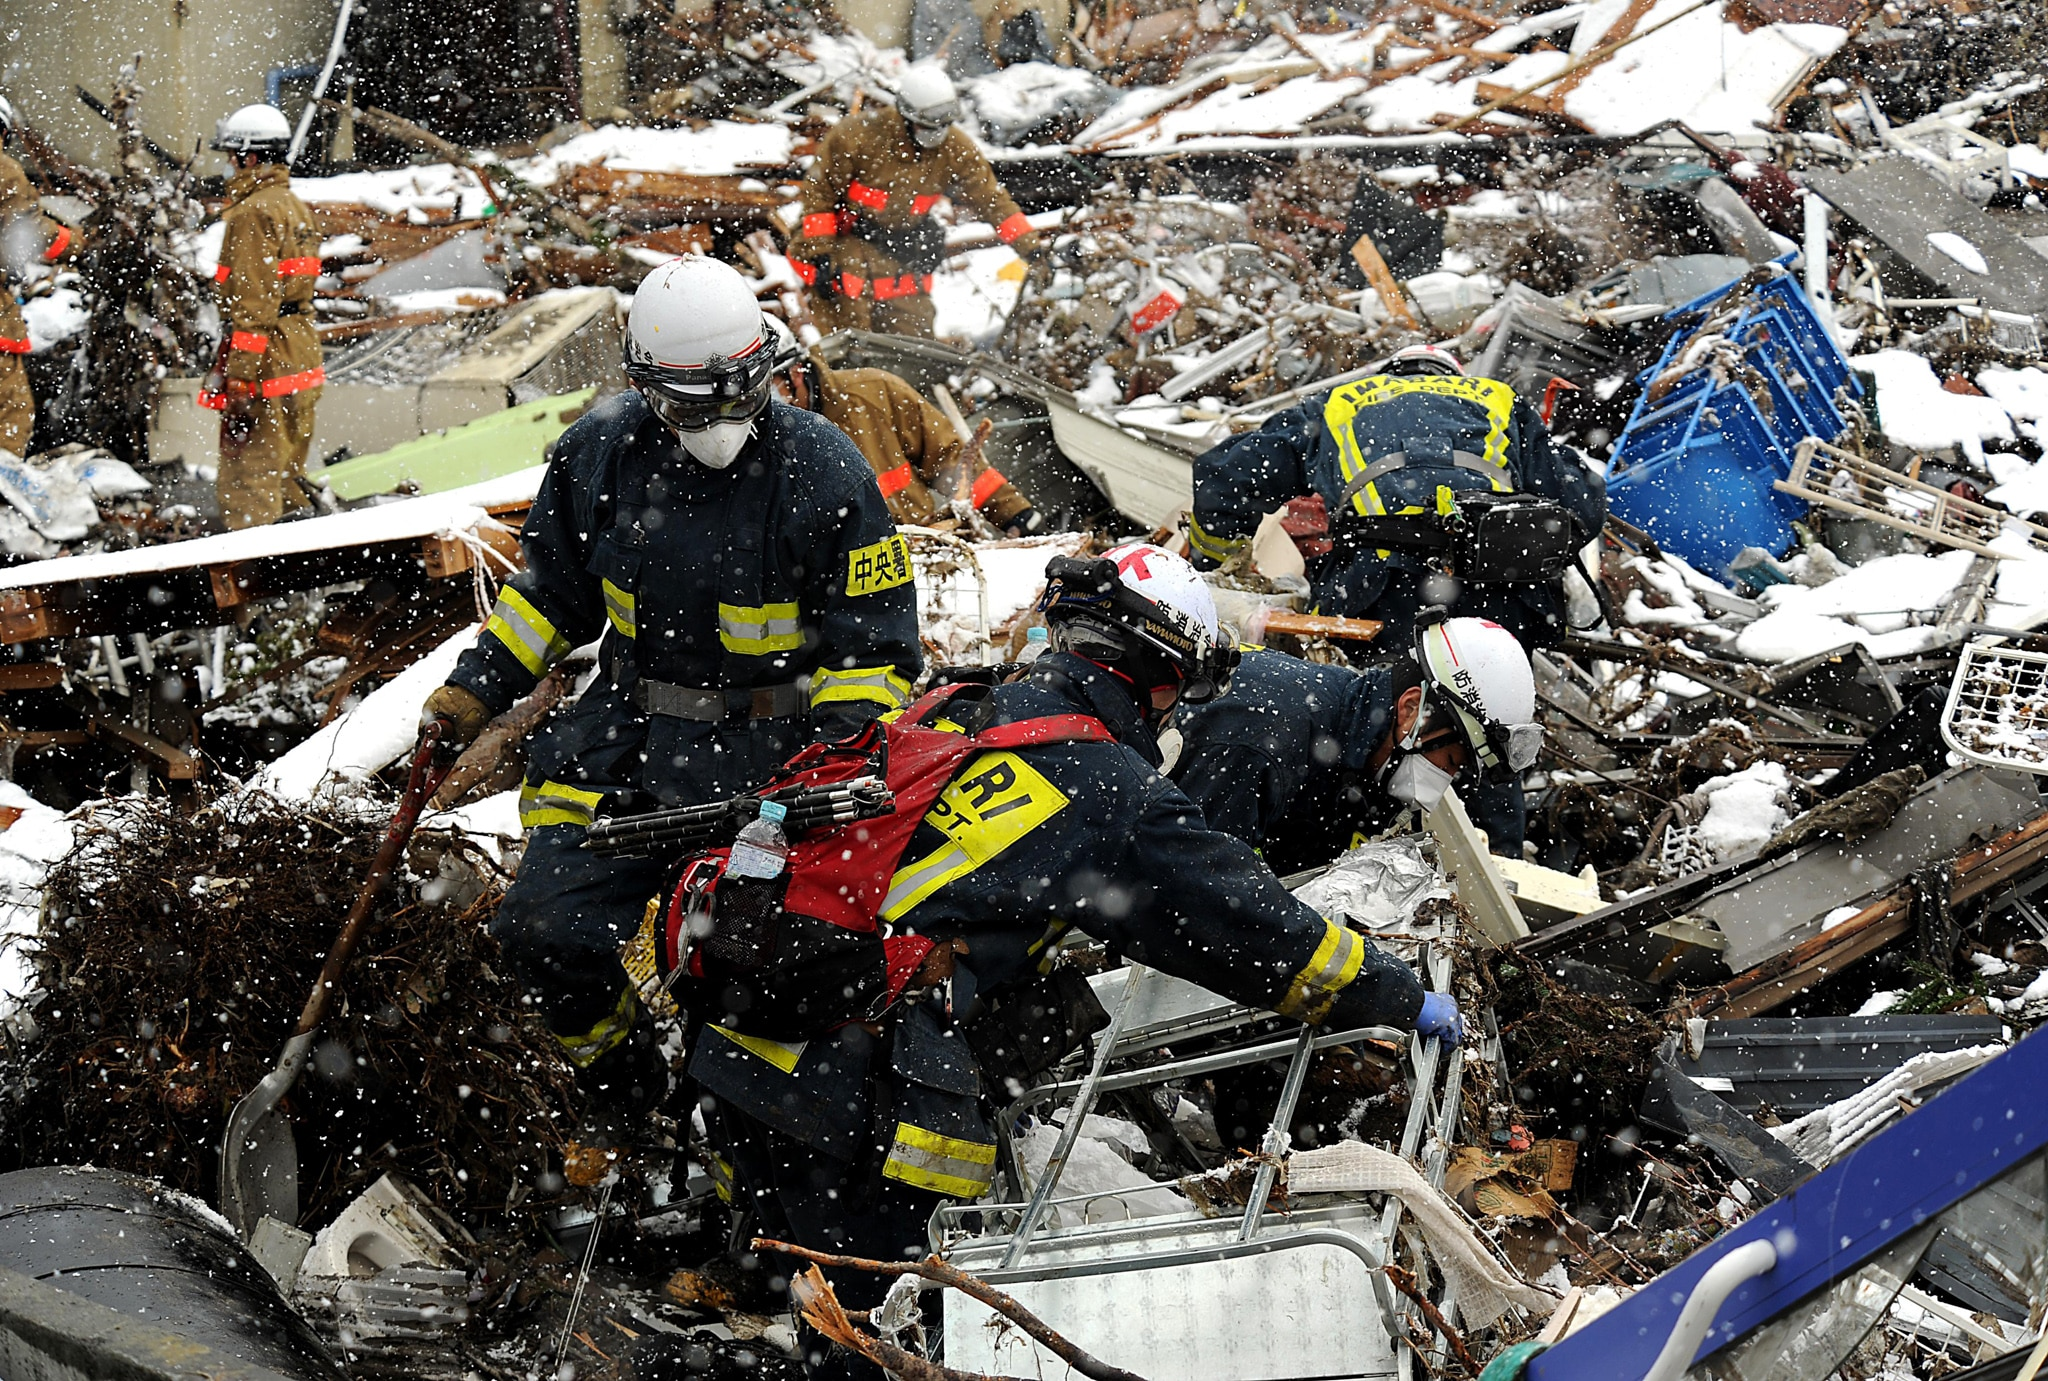 Rescue workers searching through debris (MSgt Jeremy Lock/USAF)